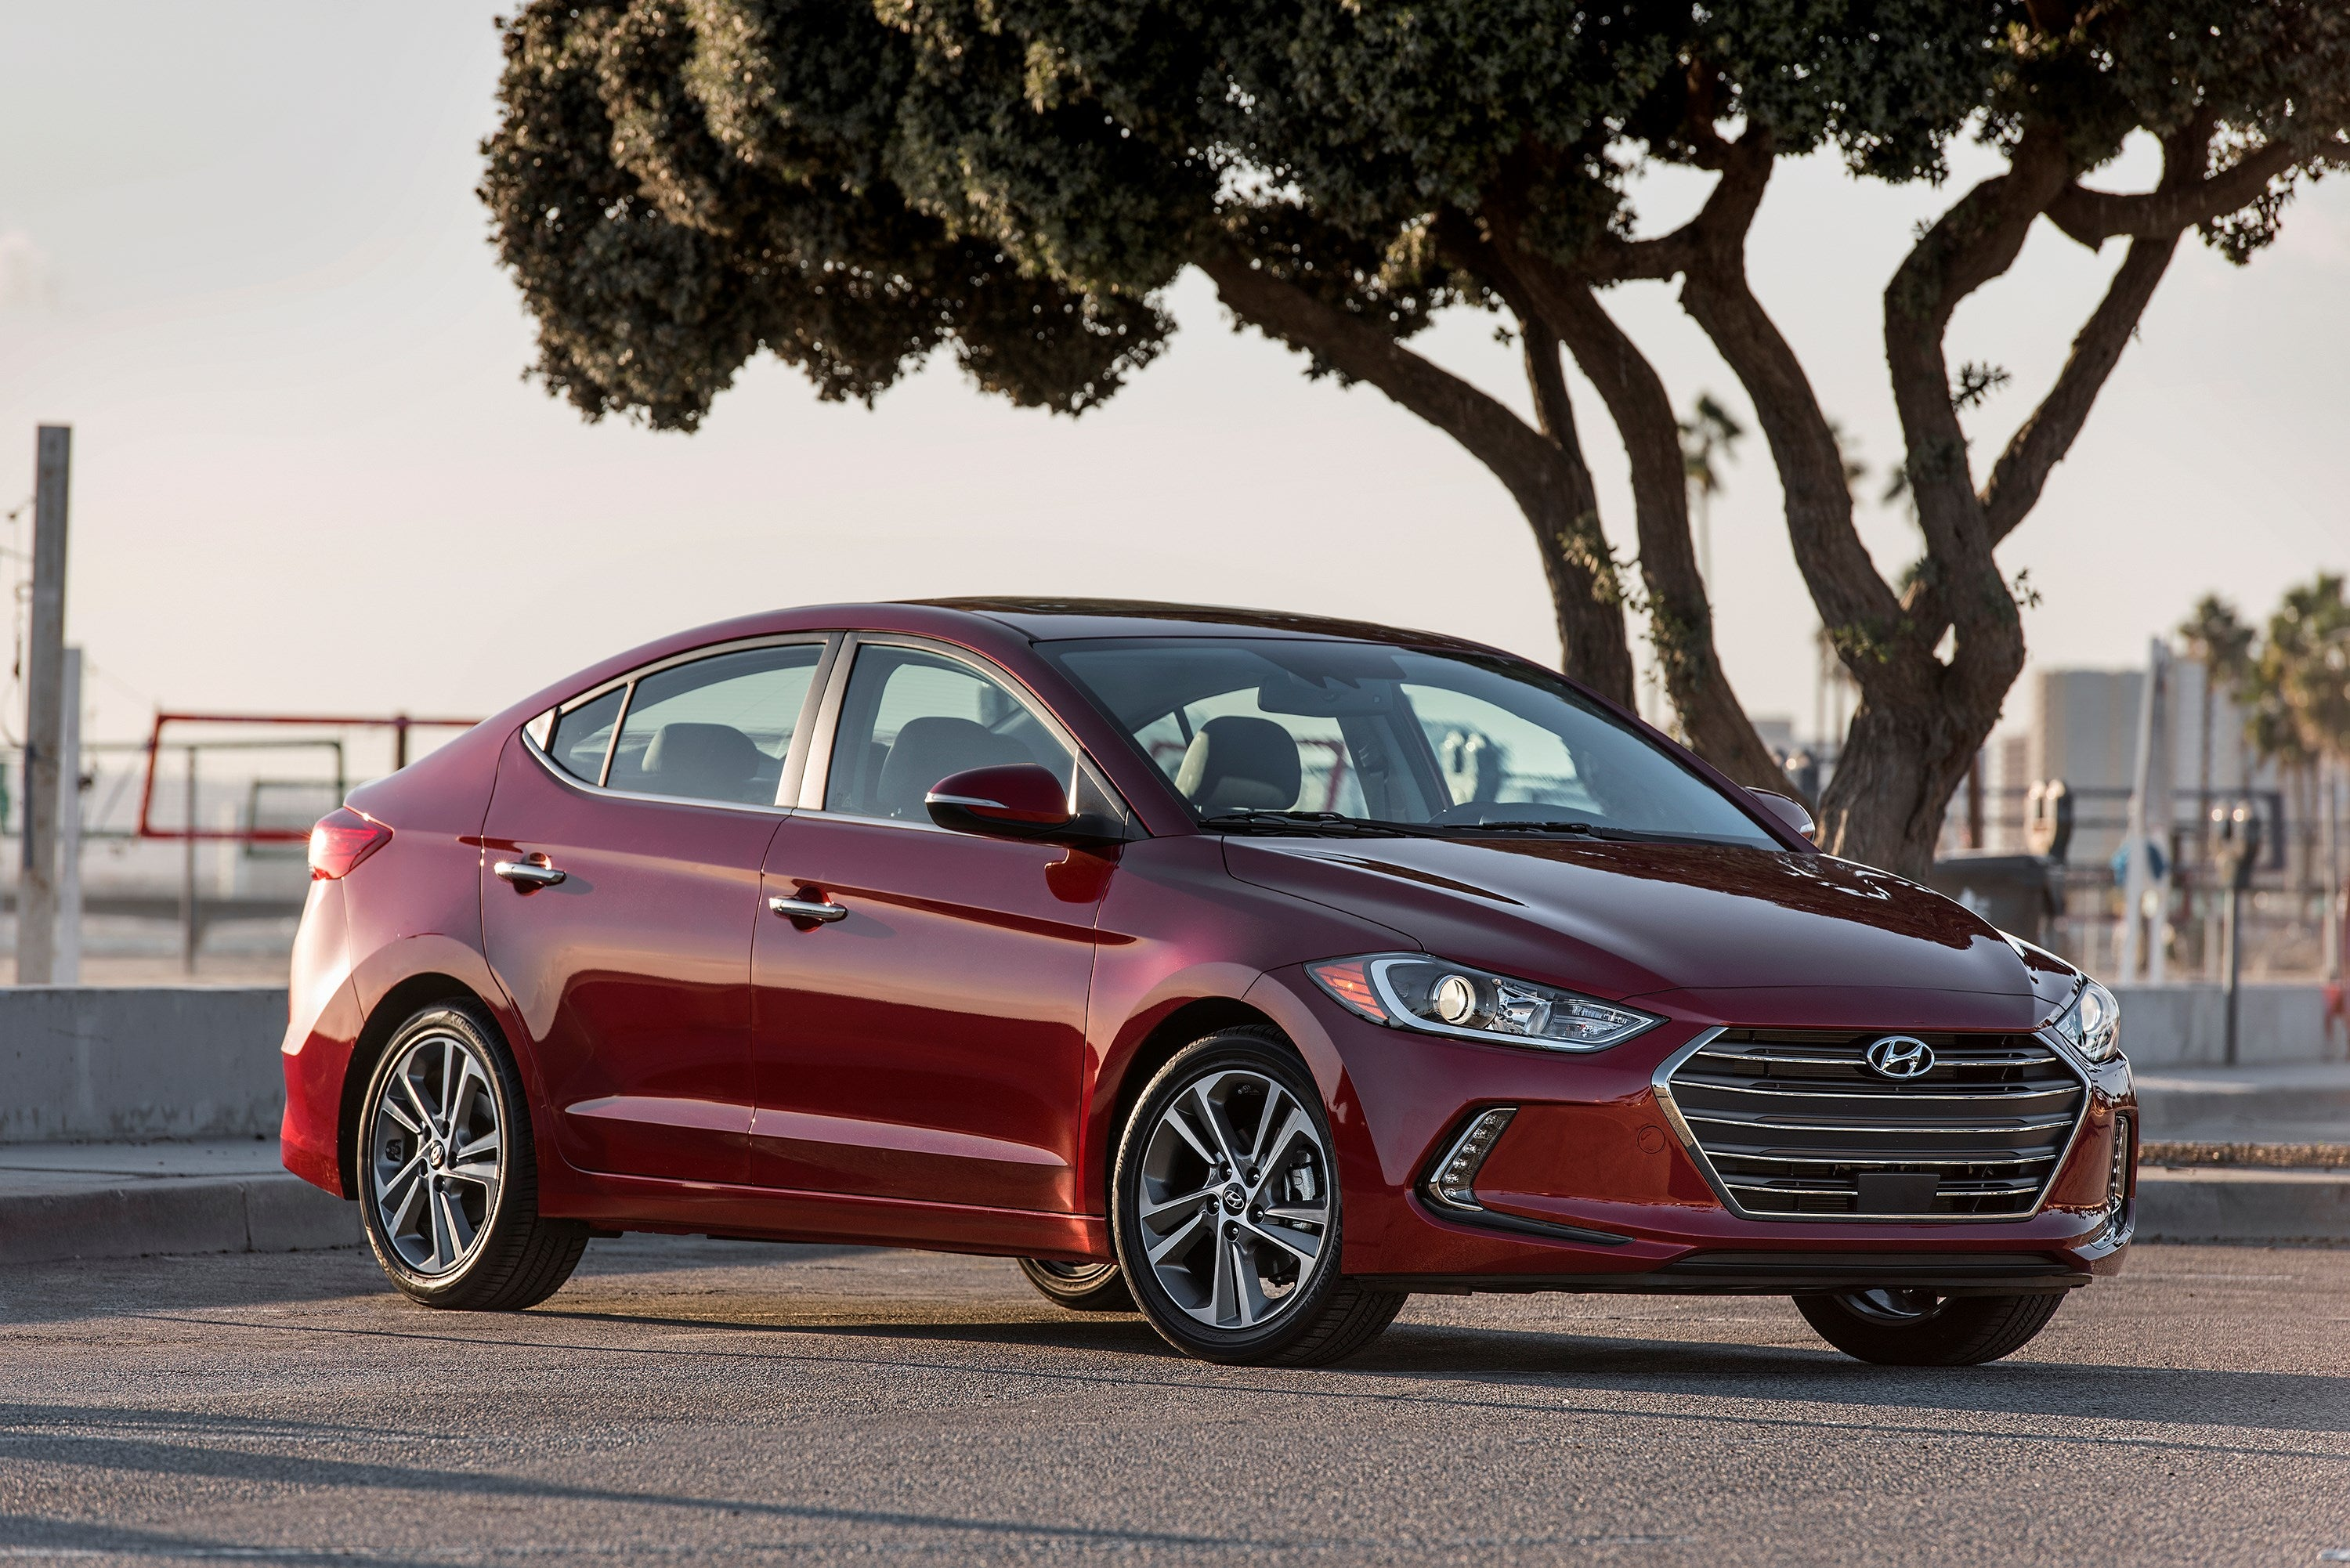 The 2017 Hyundai Elantra sedan.